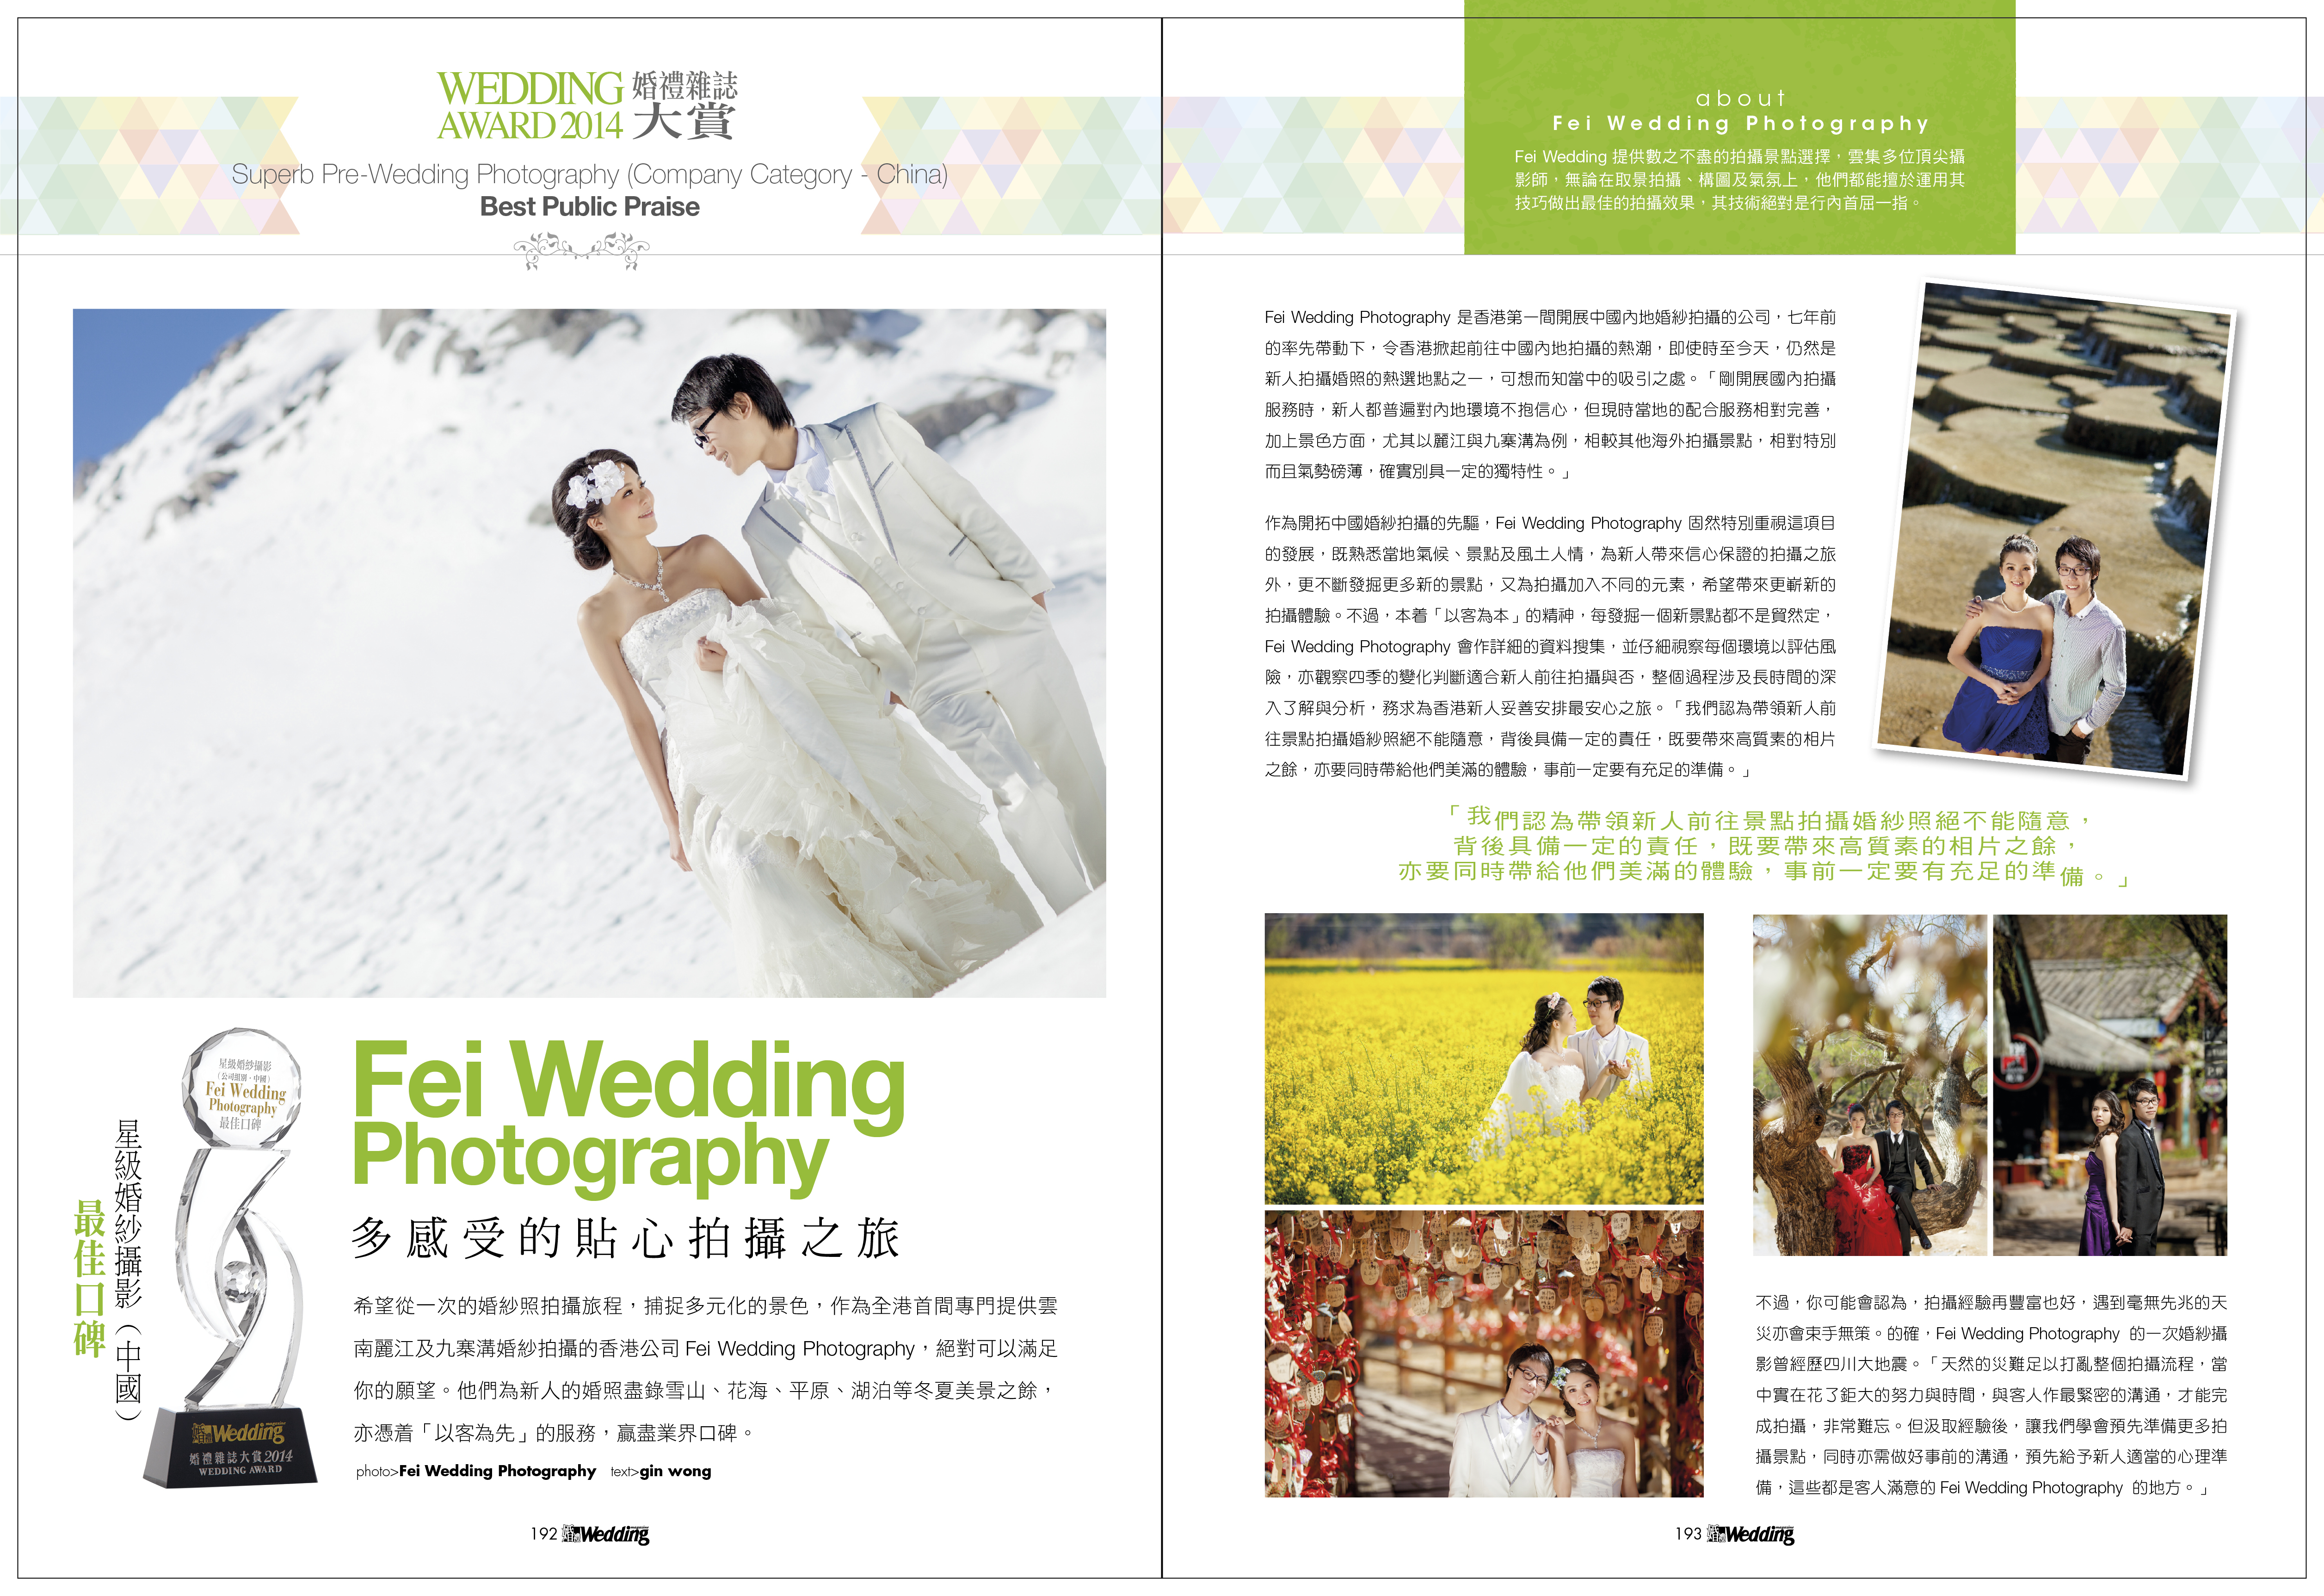 fei wedding 2014 大賞